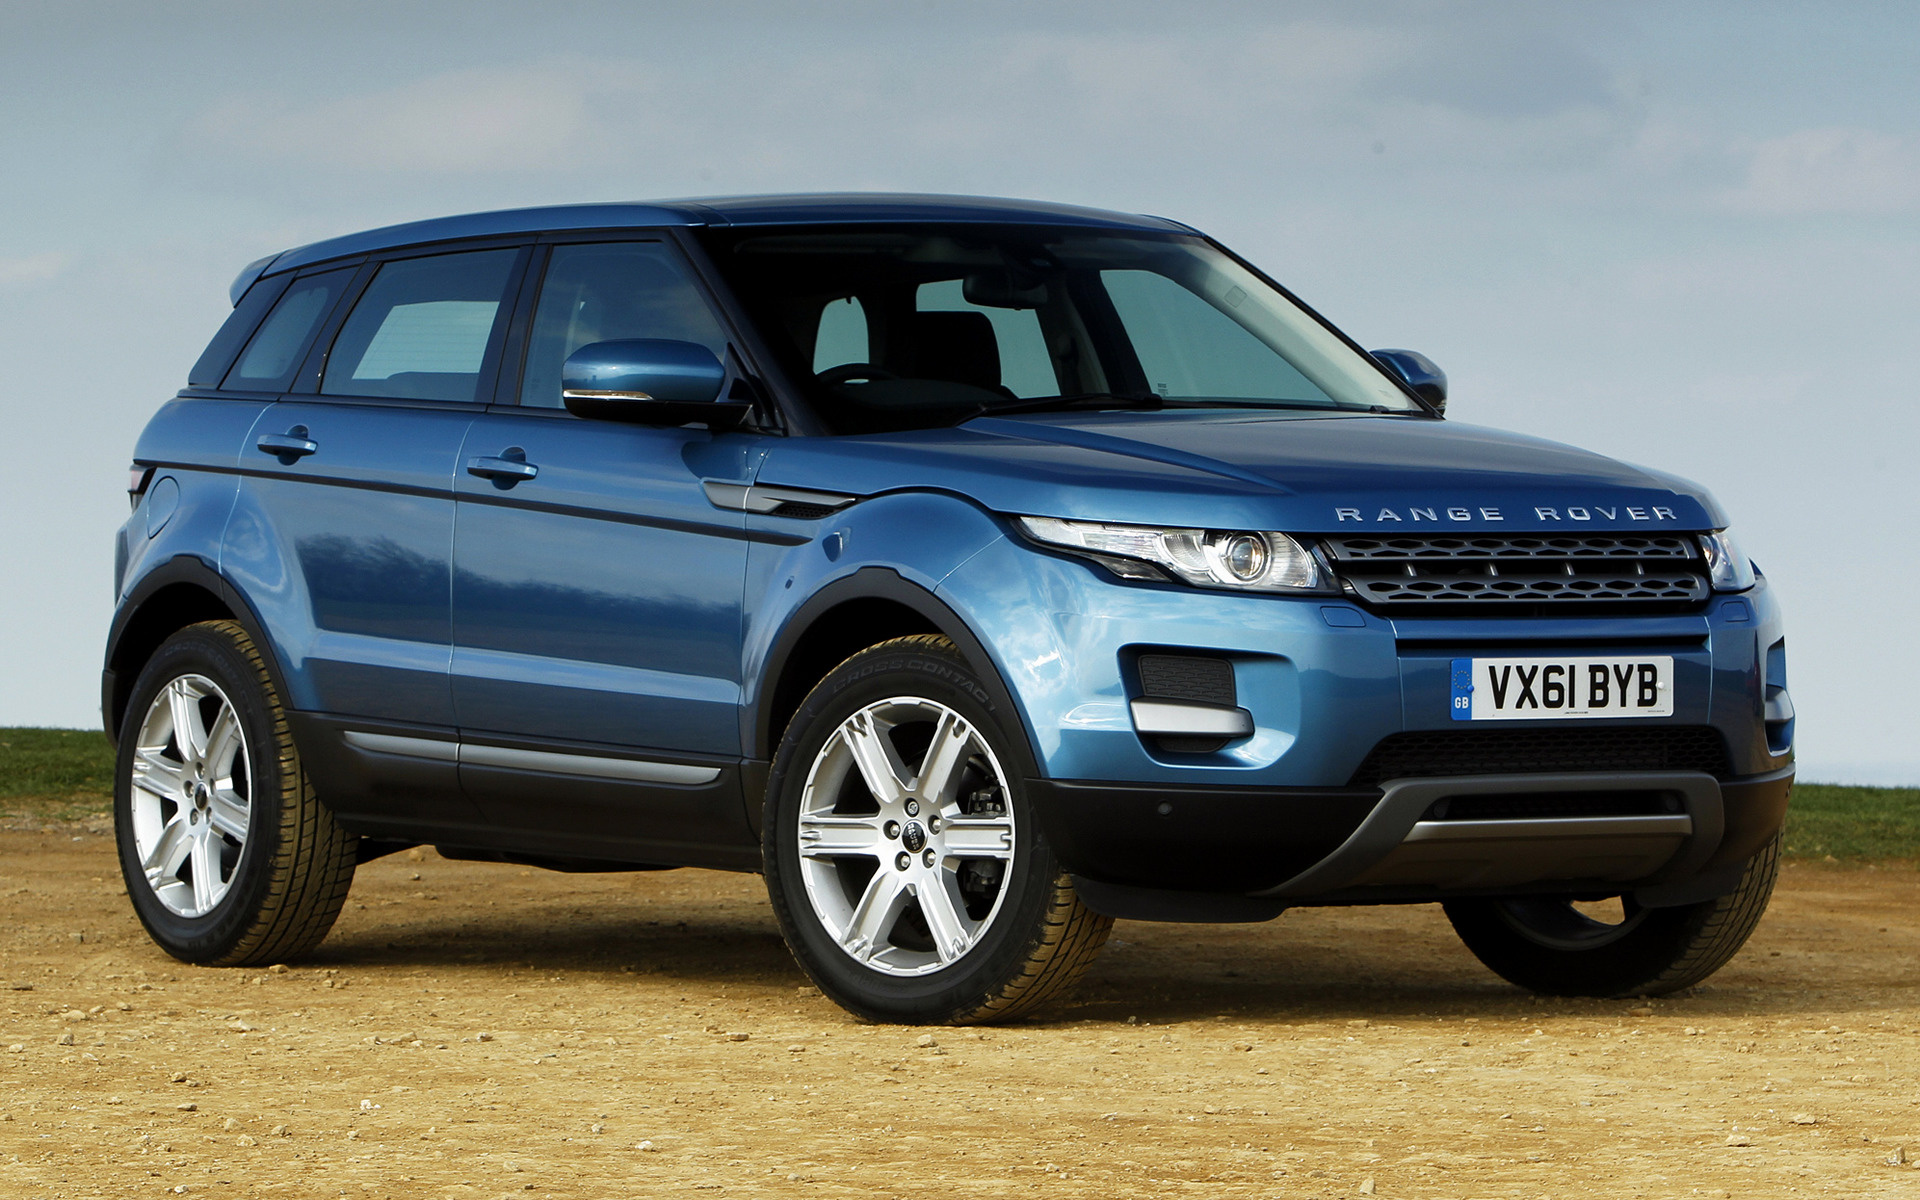 Cool Wallpaper High Resolution Range Rover - range-rover-evoque-car-wallpaper-37050  Perfect Image Reference_238128.jpg